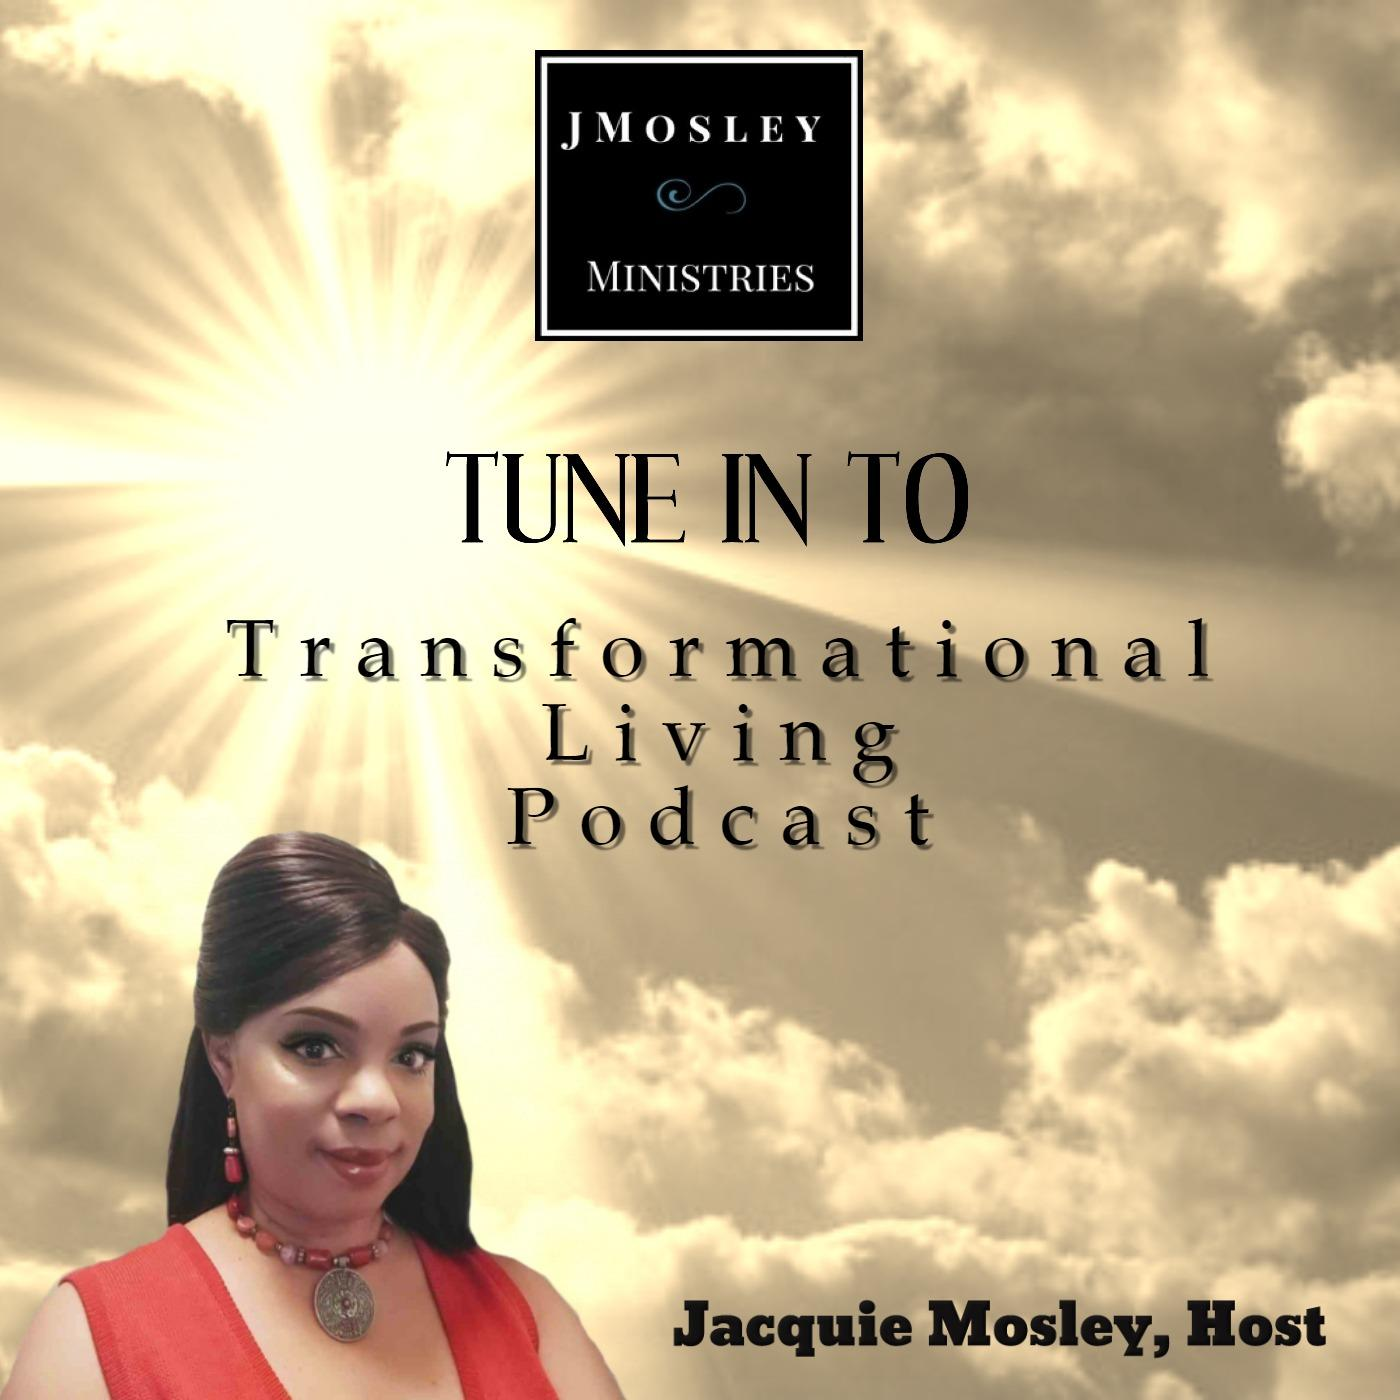 Transformational Living Podcast - Mission & Purpose